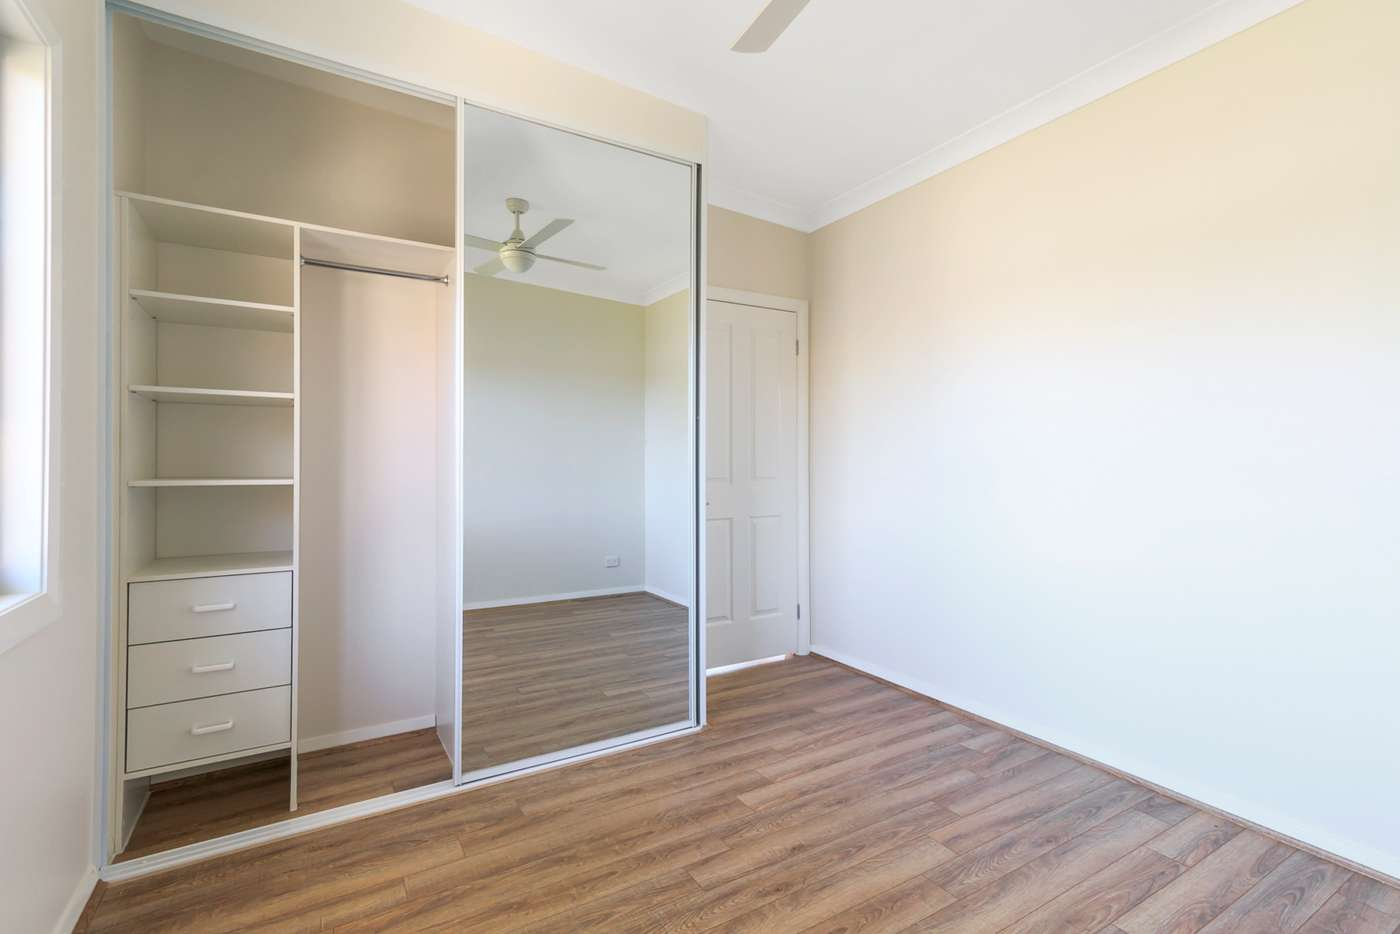 Sixth view of Homely house listing, 28A Tanderra Street, Colyton NSW 2760